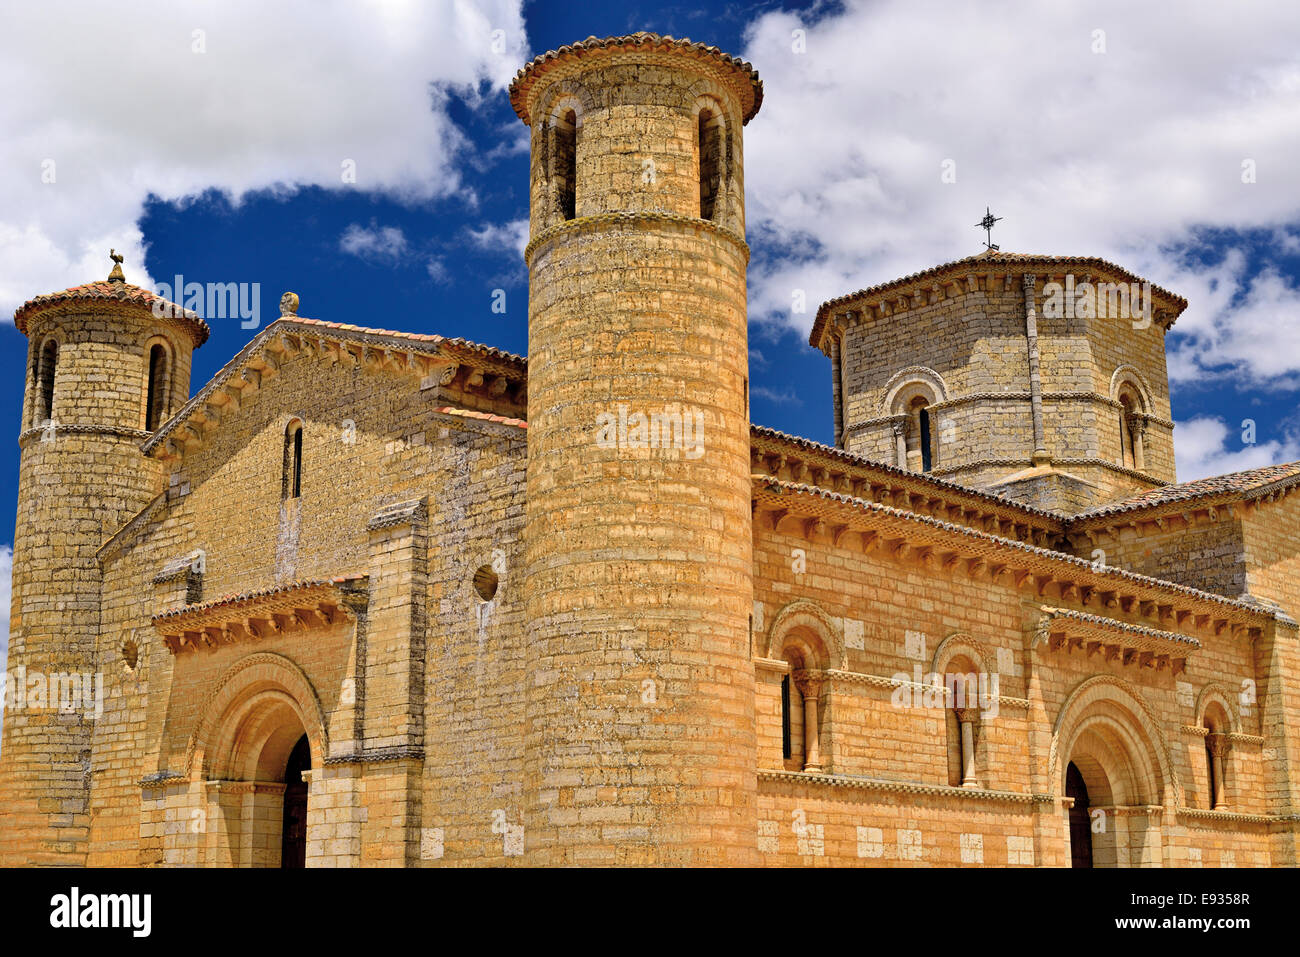 Spain, St. James Way: External view of the Romanesque church Saint Martin in Fromista - Stock Image